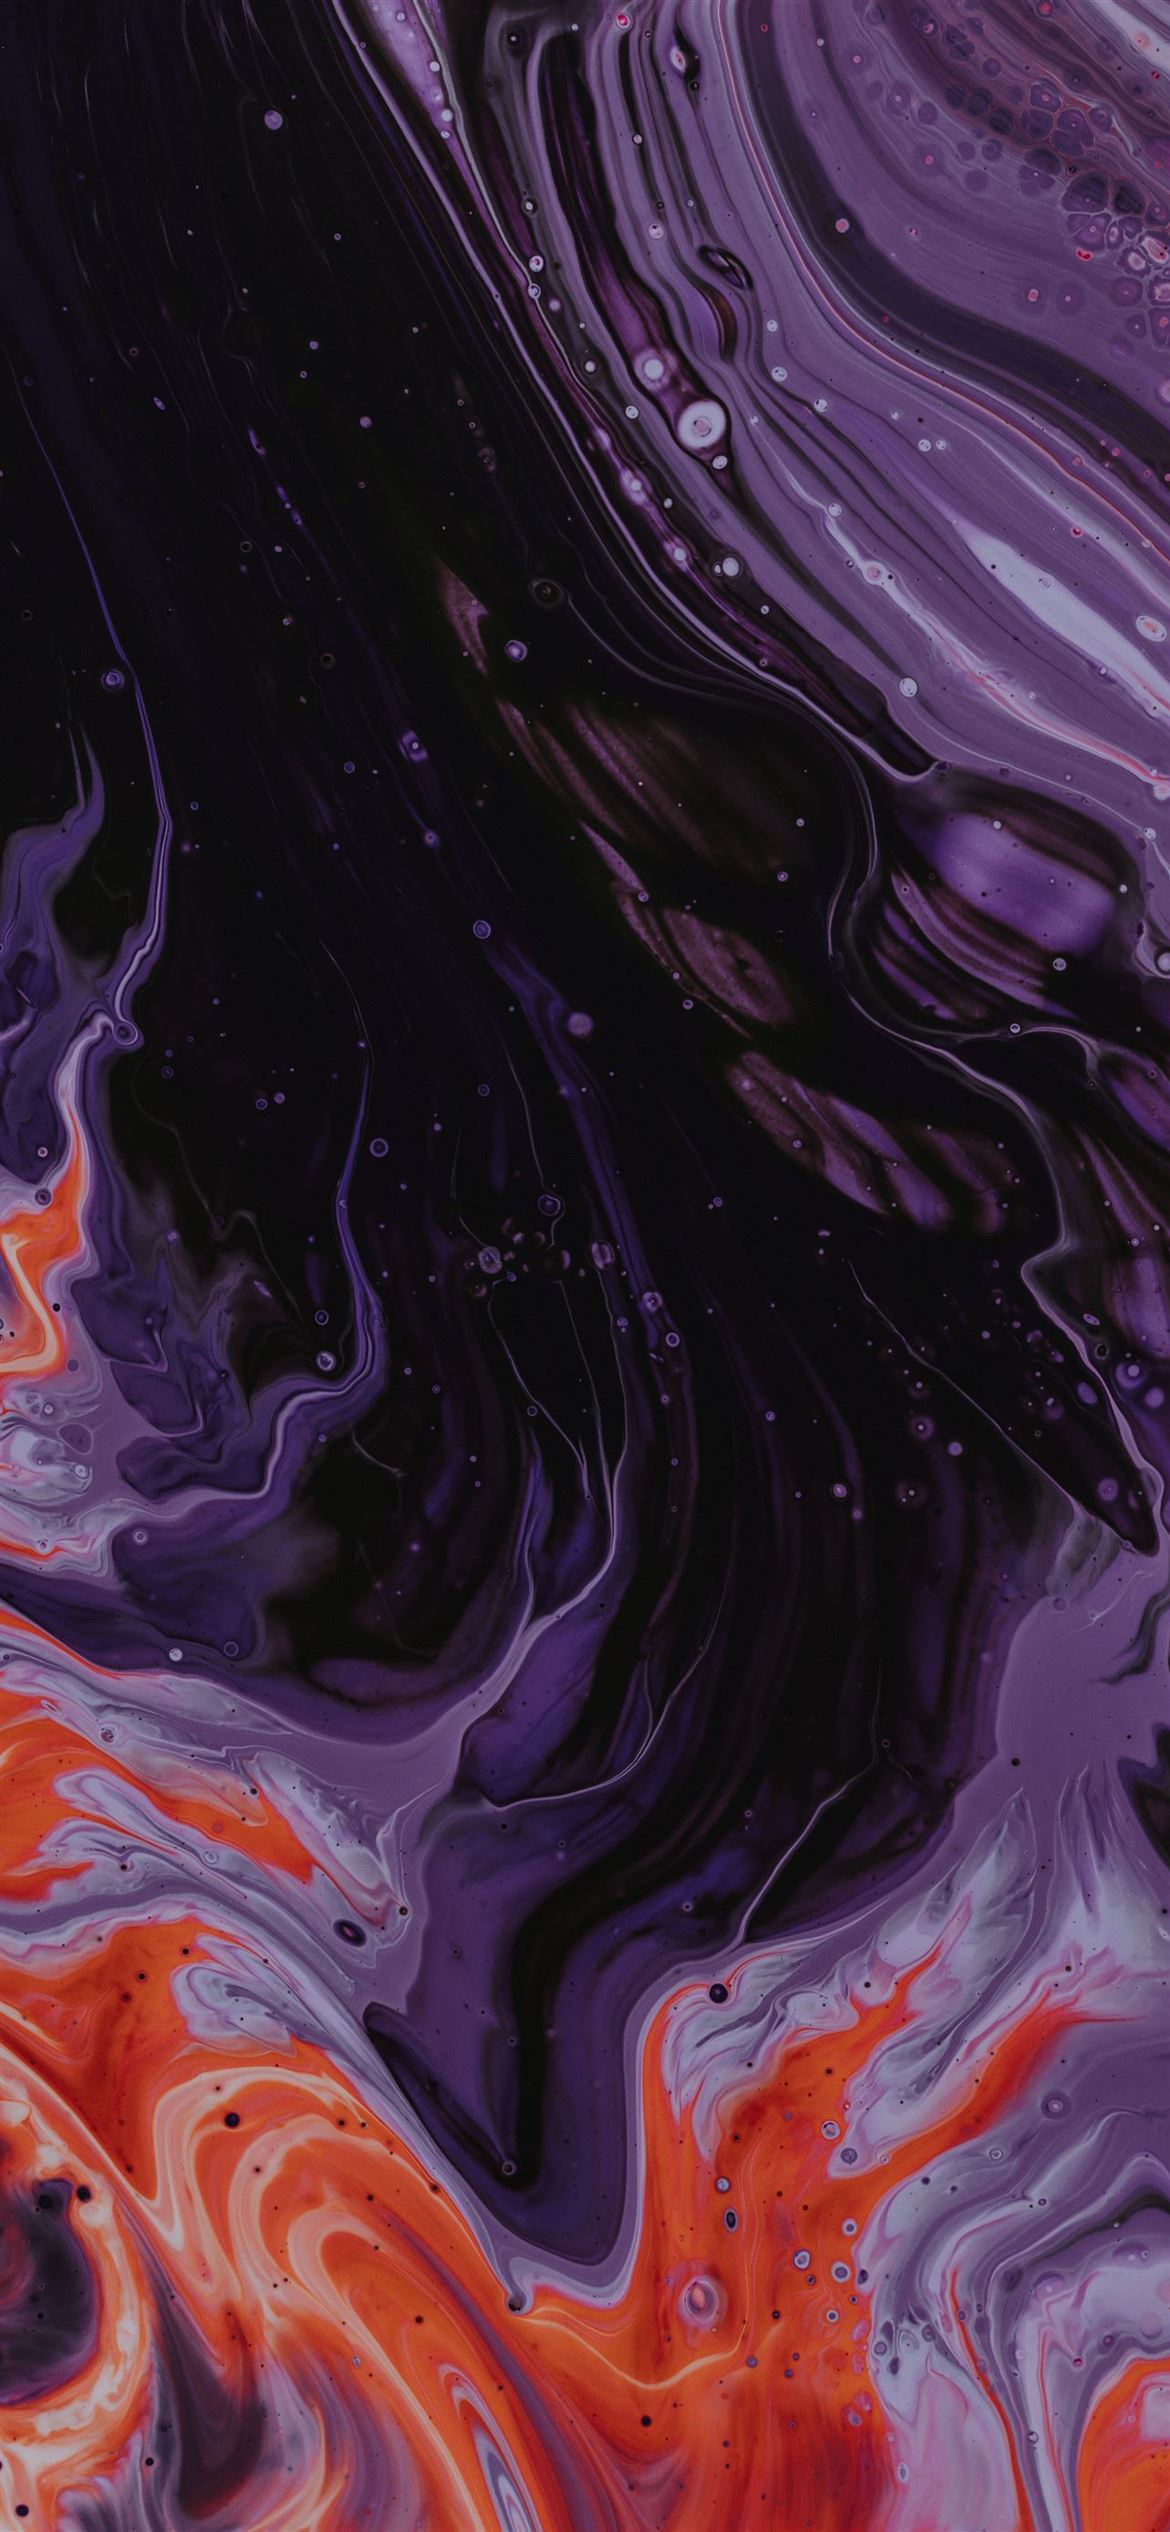 Purple Black And Orange Abstract Paintin Iphone 12 Wallpapers Free Download